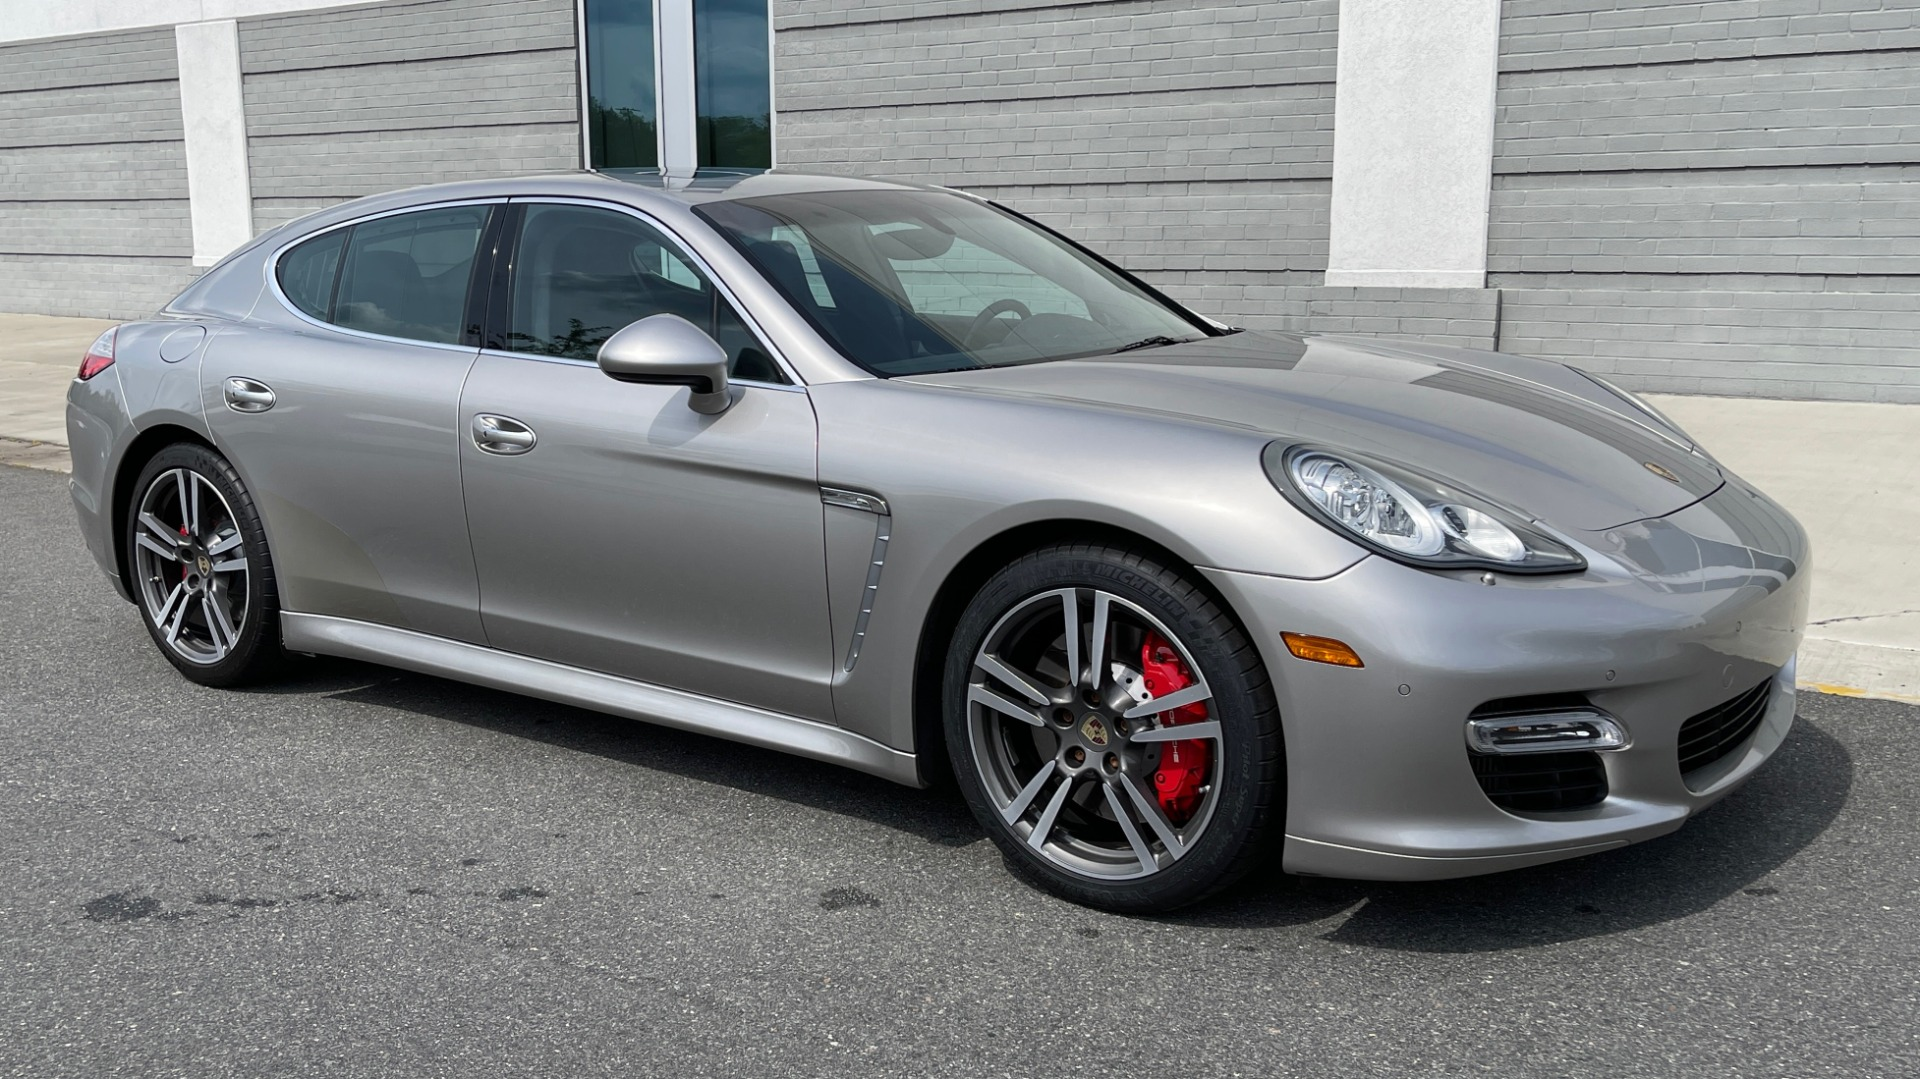 Used 2010 Porsche PANAMERA 4DR HB TURBO / SPORT CHRONO / BOSE / AUTO CLIMATE CONTROL for sale $42,124 at Formula Imports in Charlotte NC 28227 6